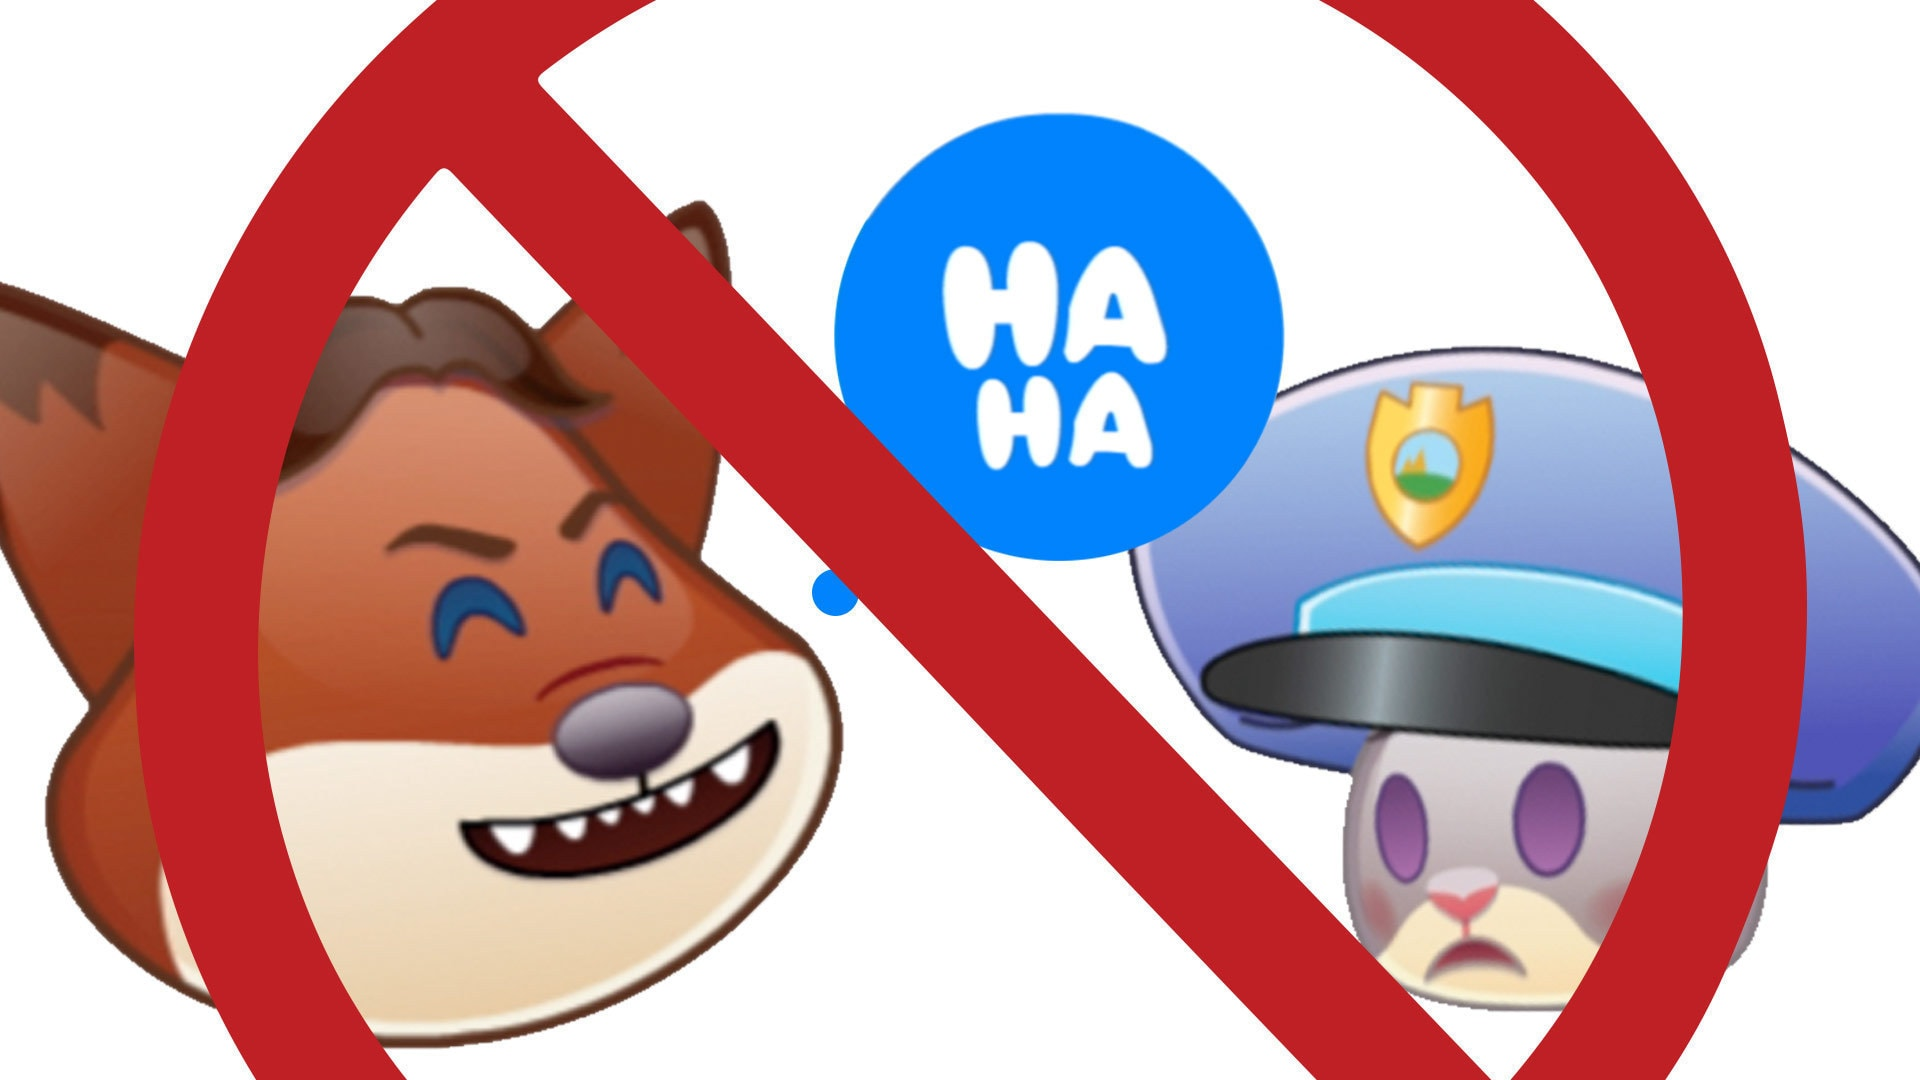 Judy's Journey As Told By Emoji | Bully Prevention PSA